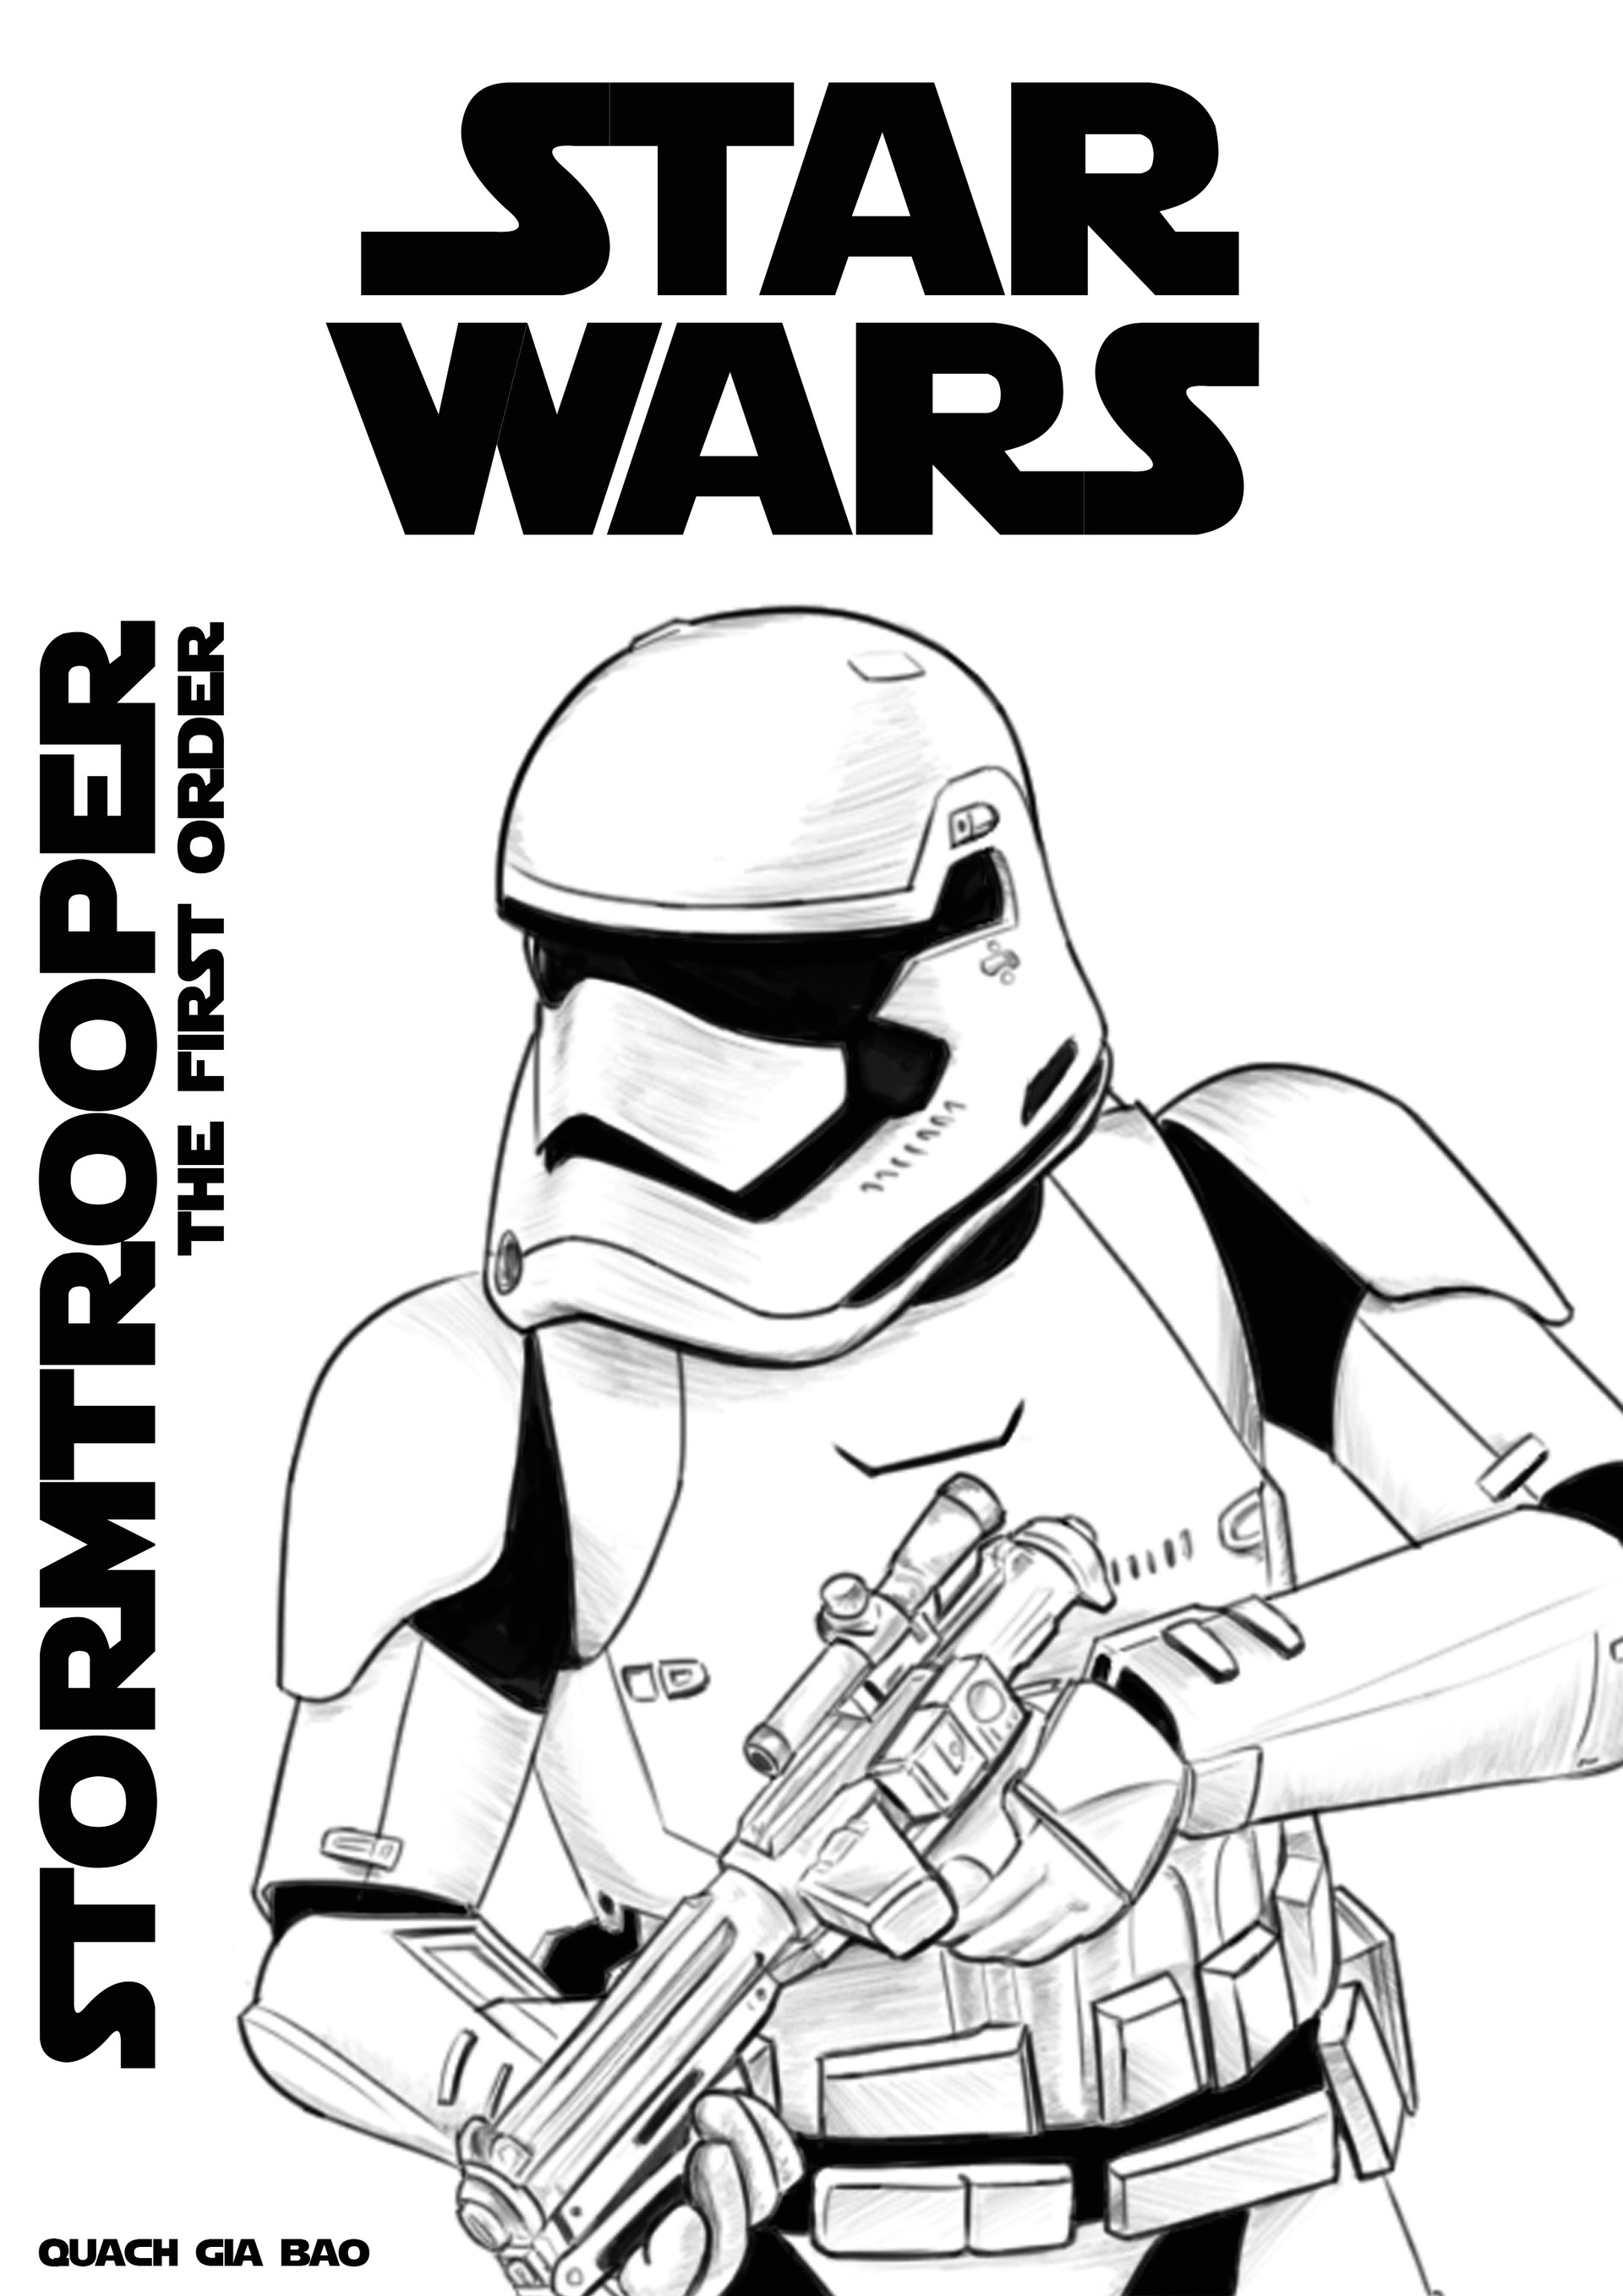 photograph relating to Stormtrooper Printable named Stormtrooper Coloring Web page at  Absolutely free for